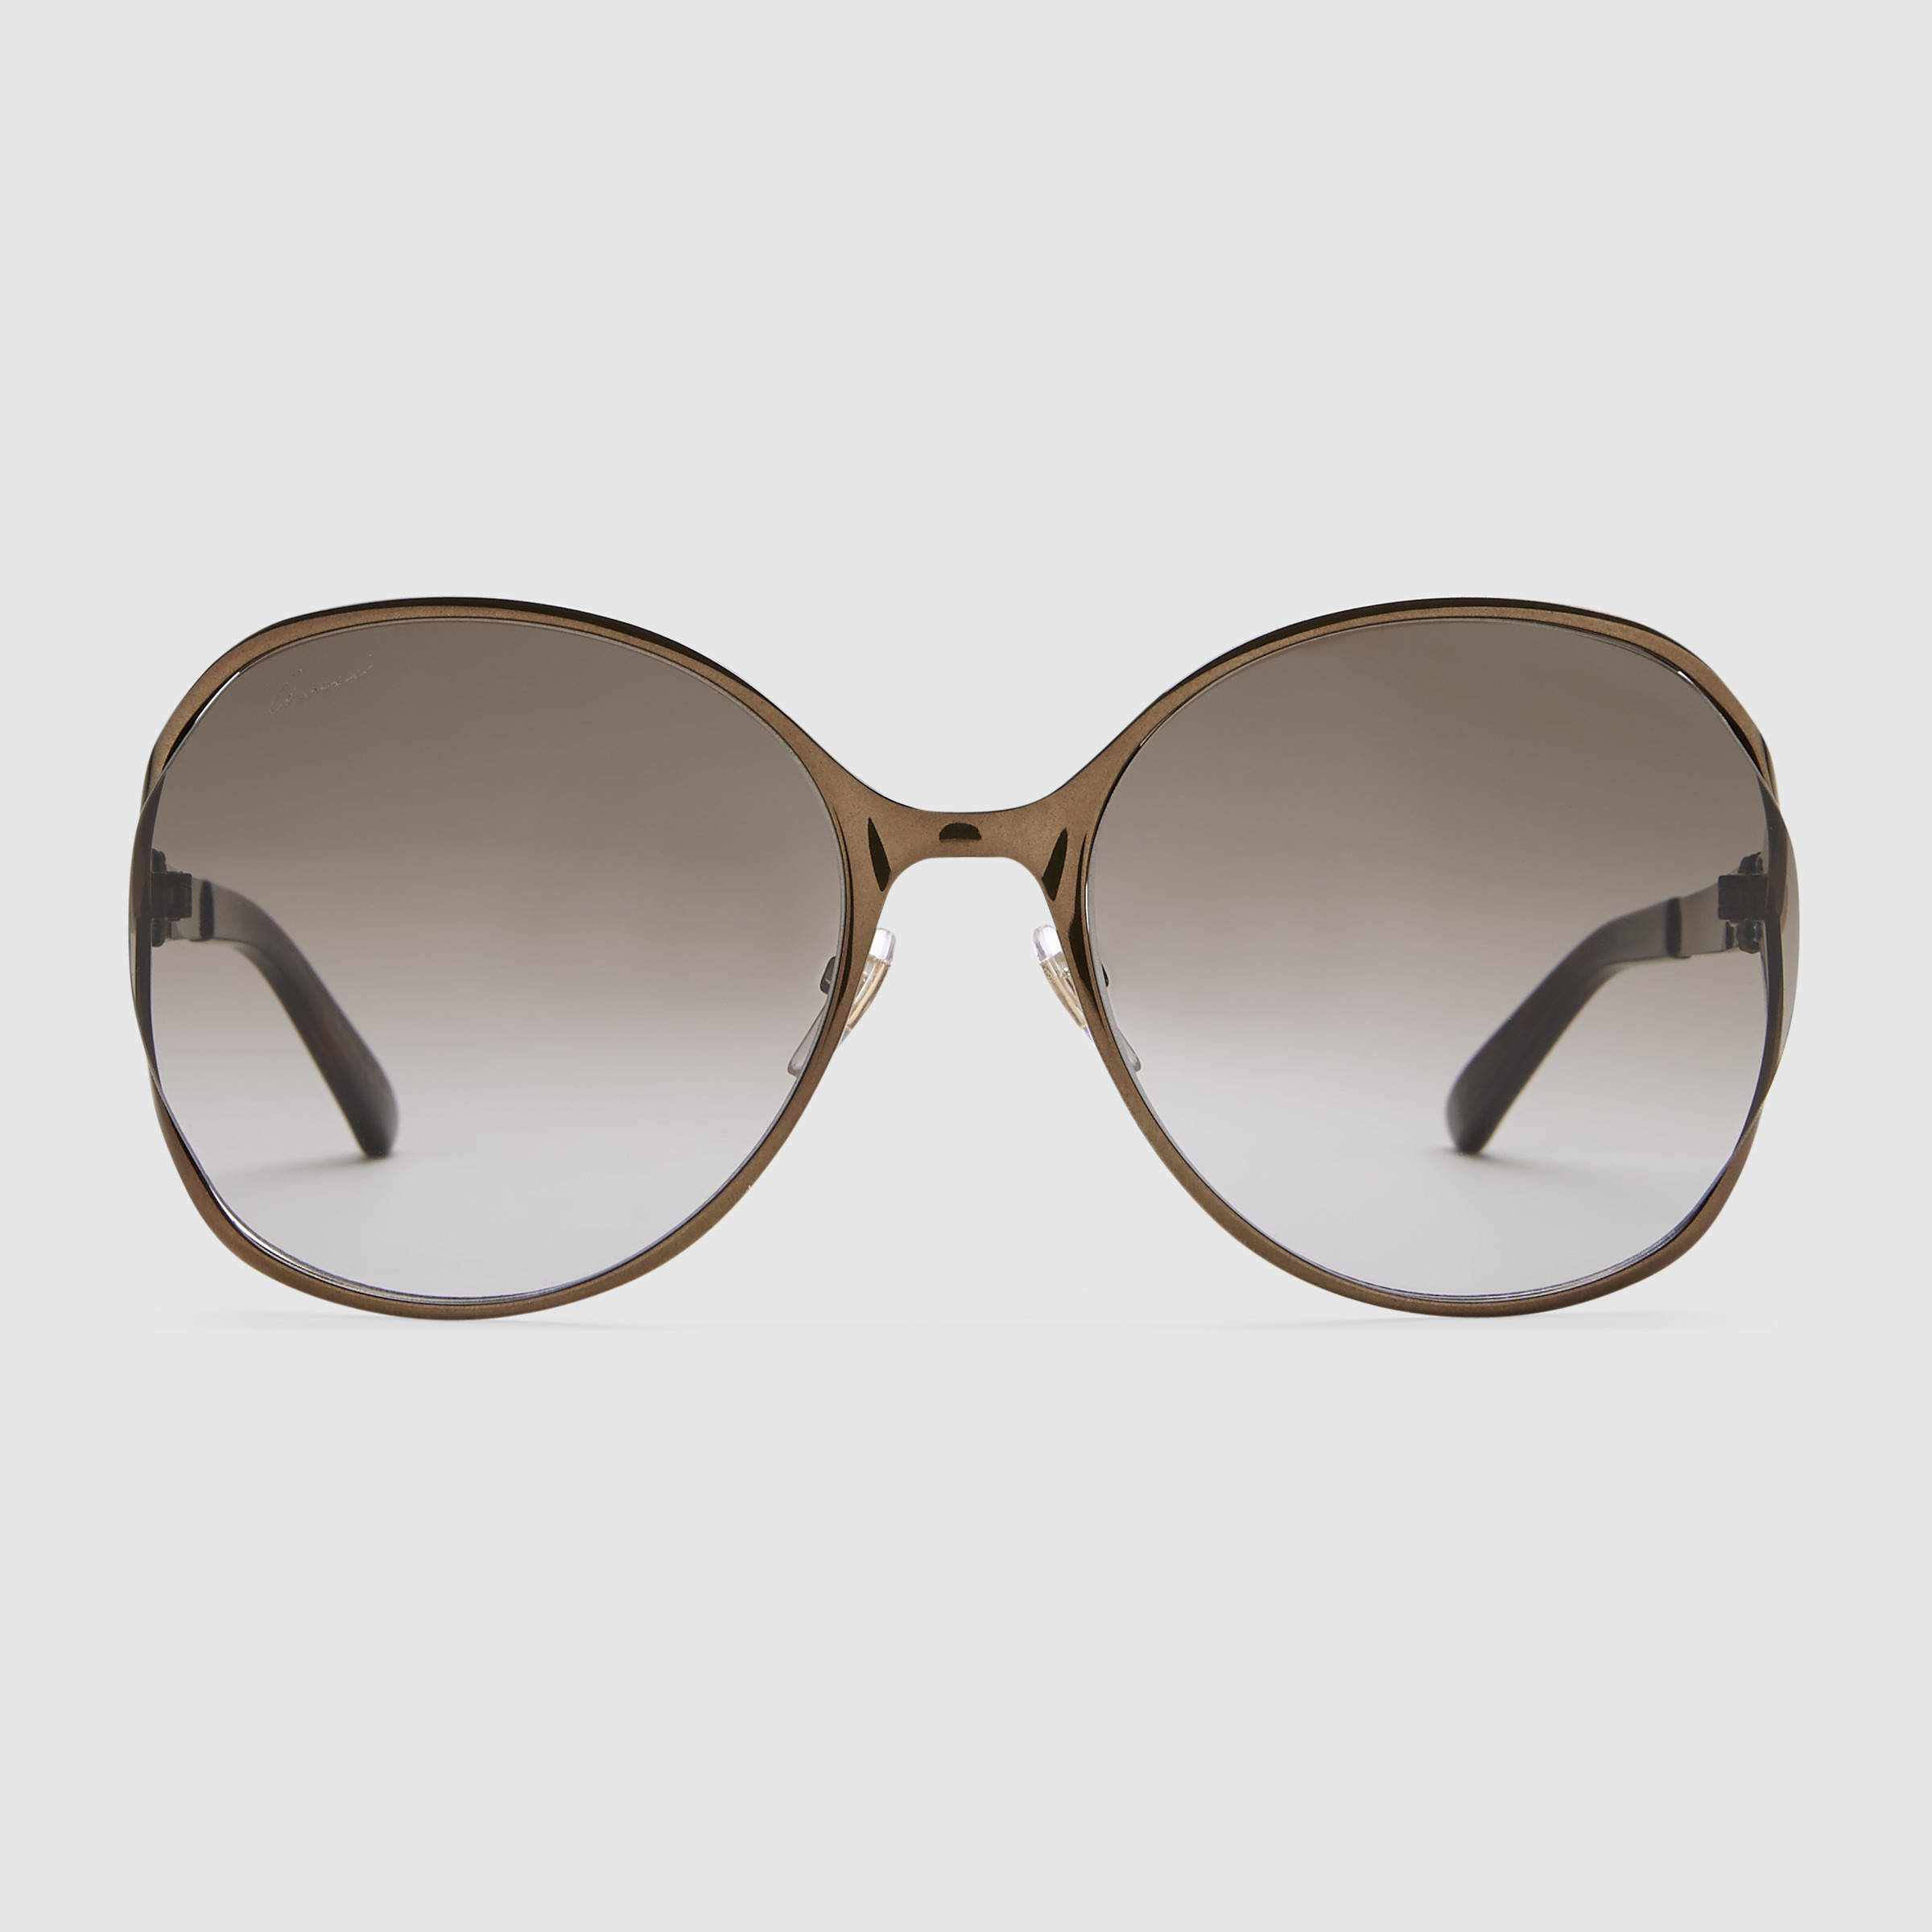 Gucci Metal Frame Glasses : Gucci Round-frame Metal Sunglasses in Black Lyst